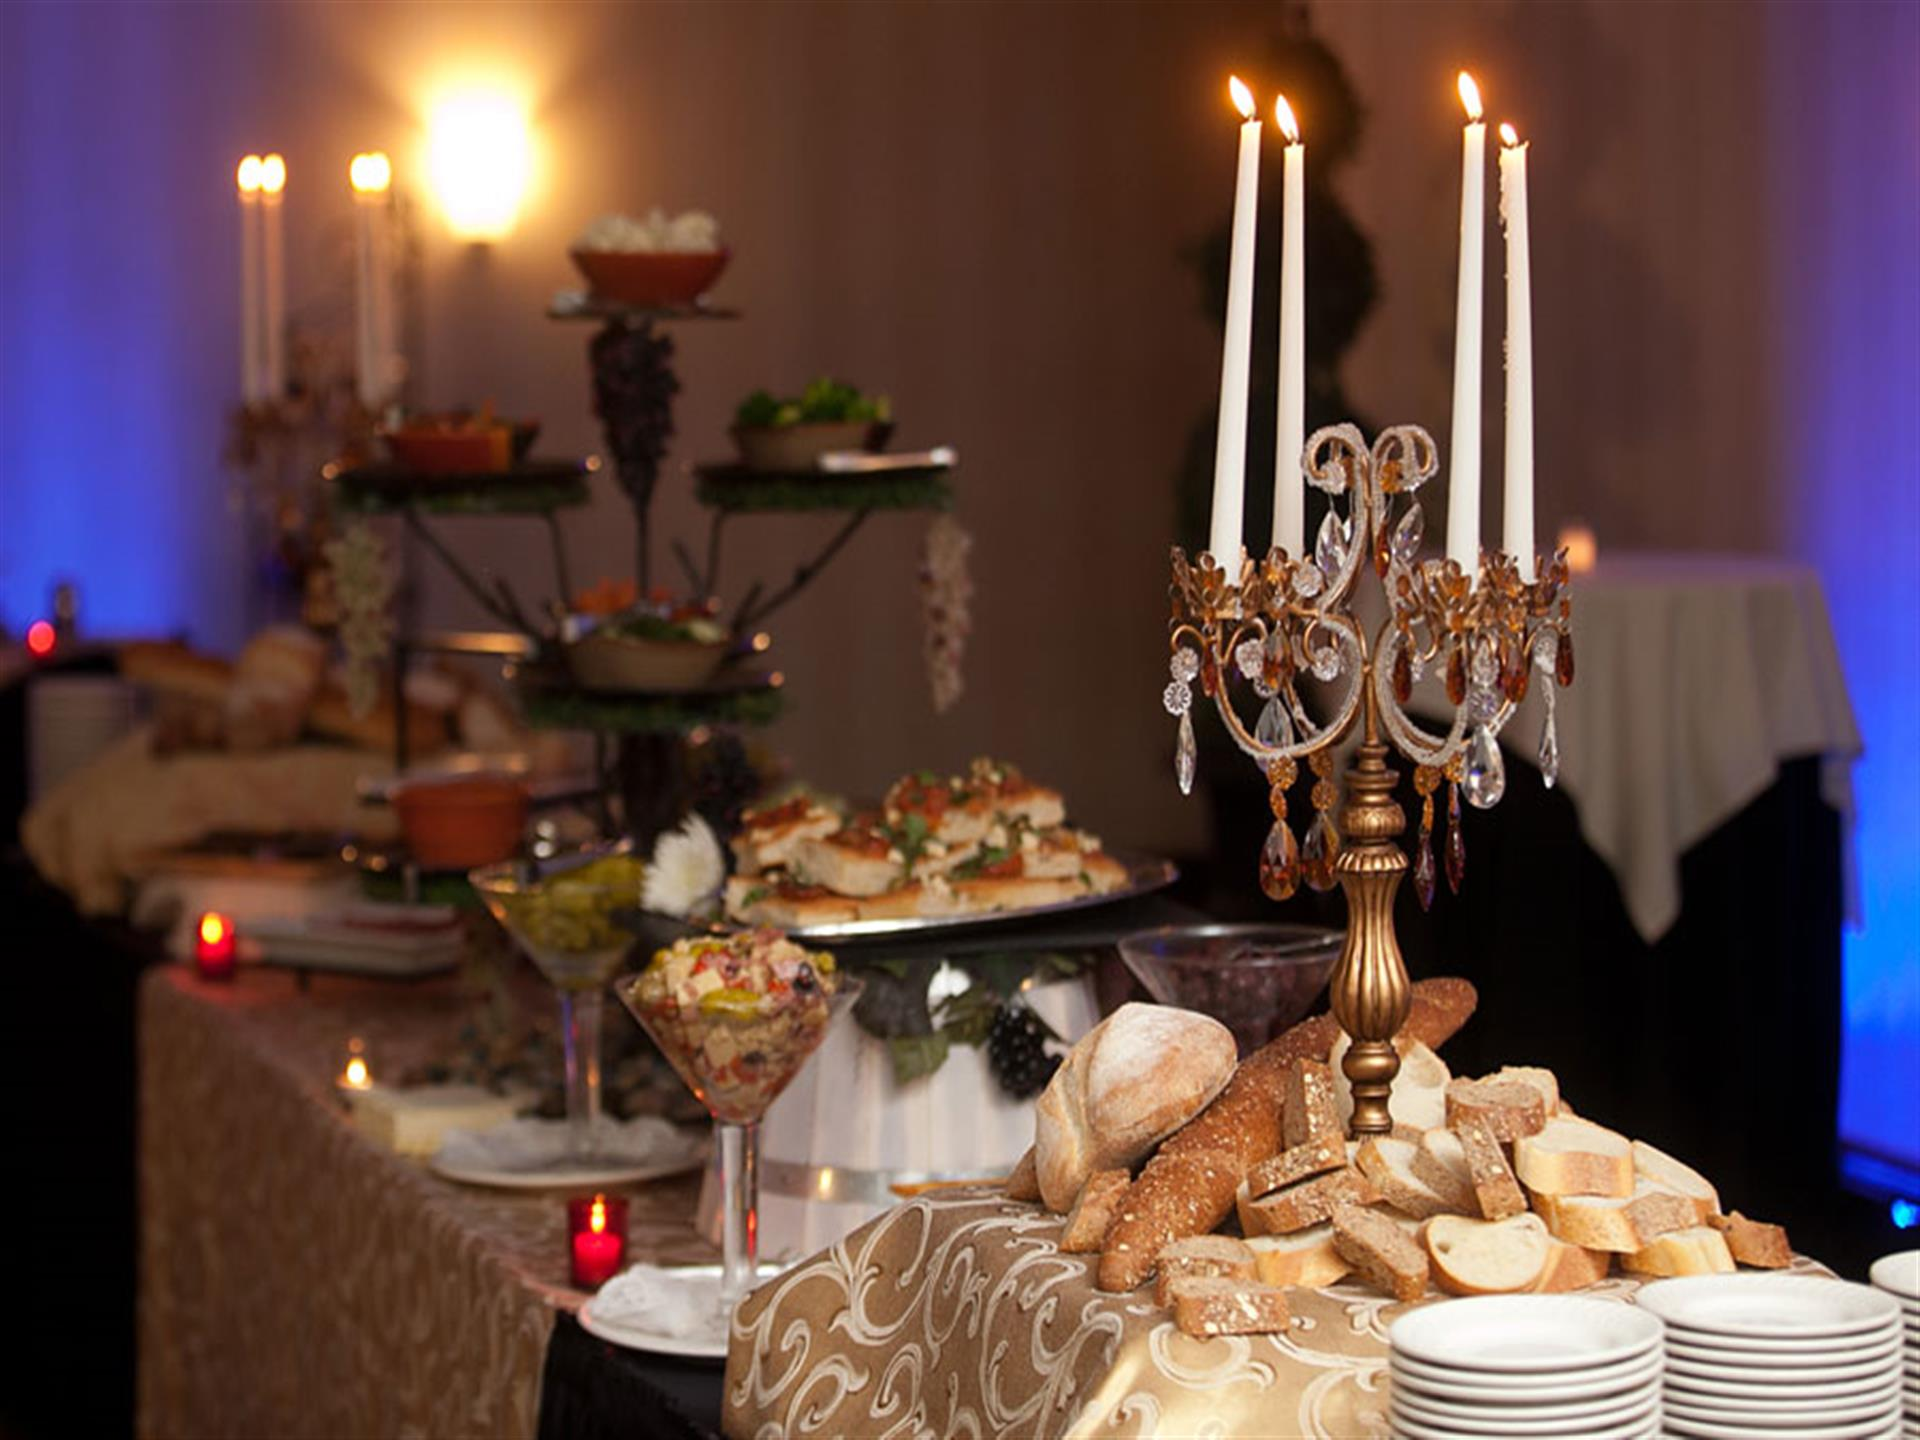 sliced bread, assorted dips and candelabras set on a table